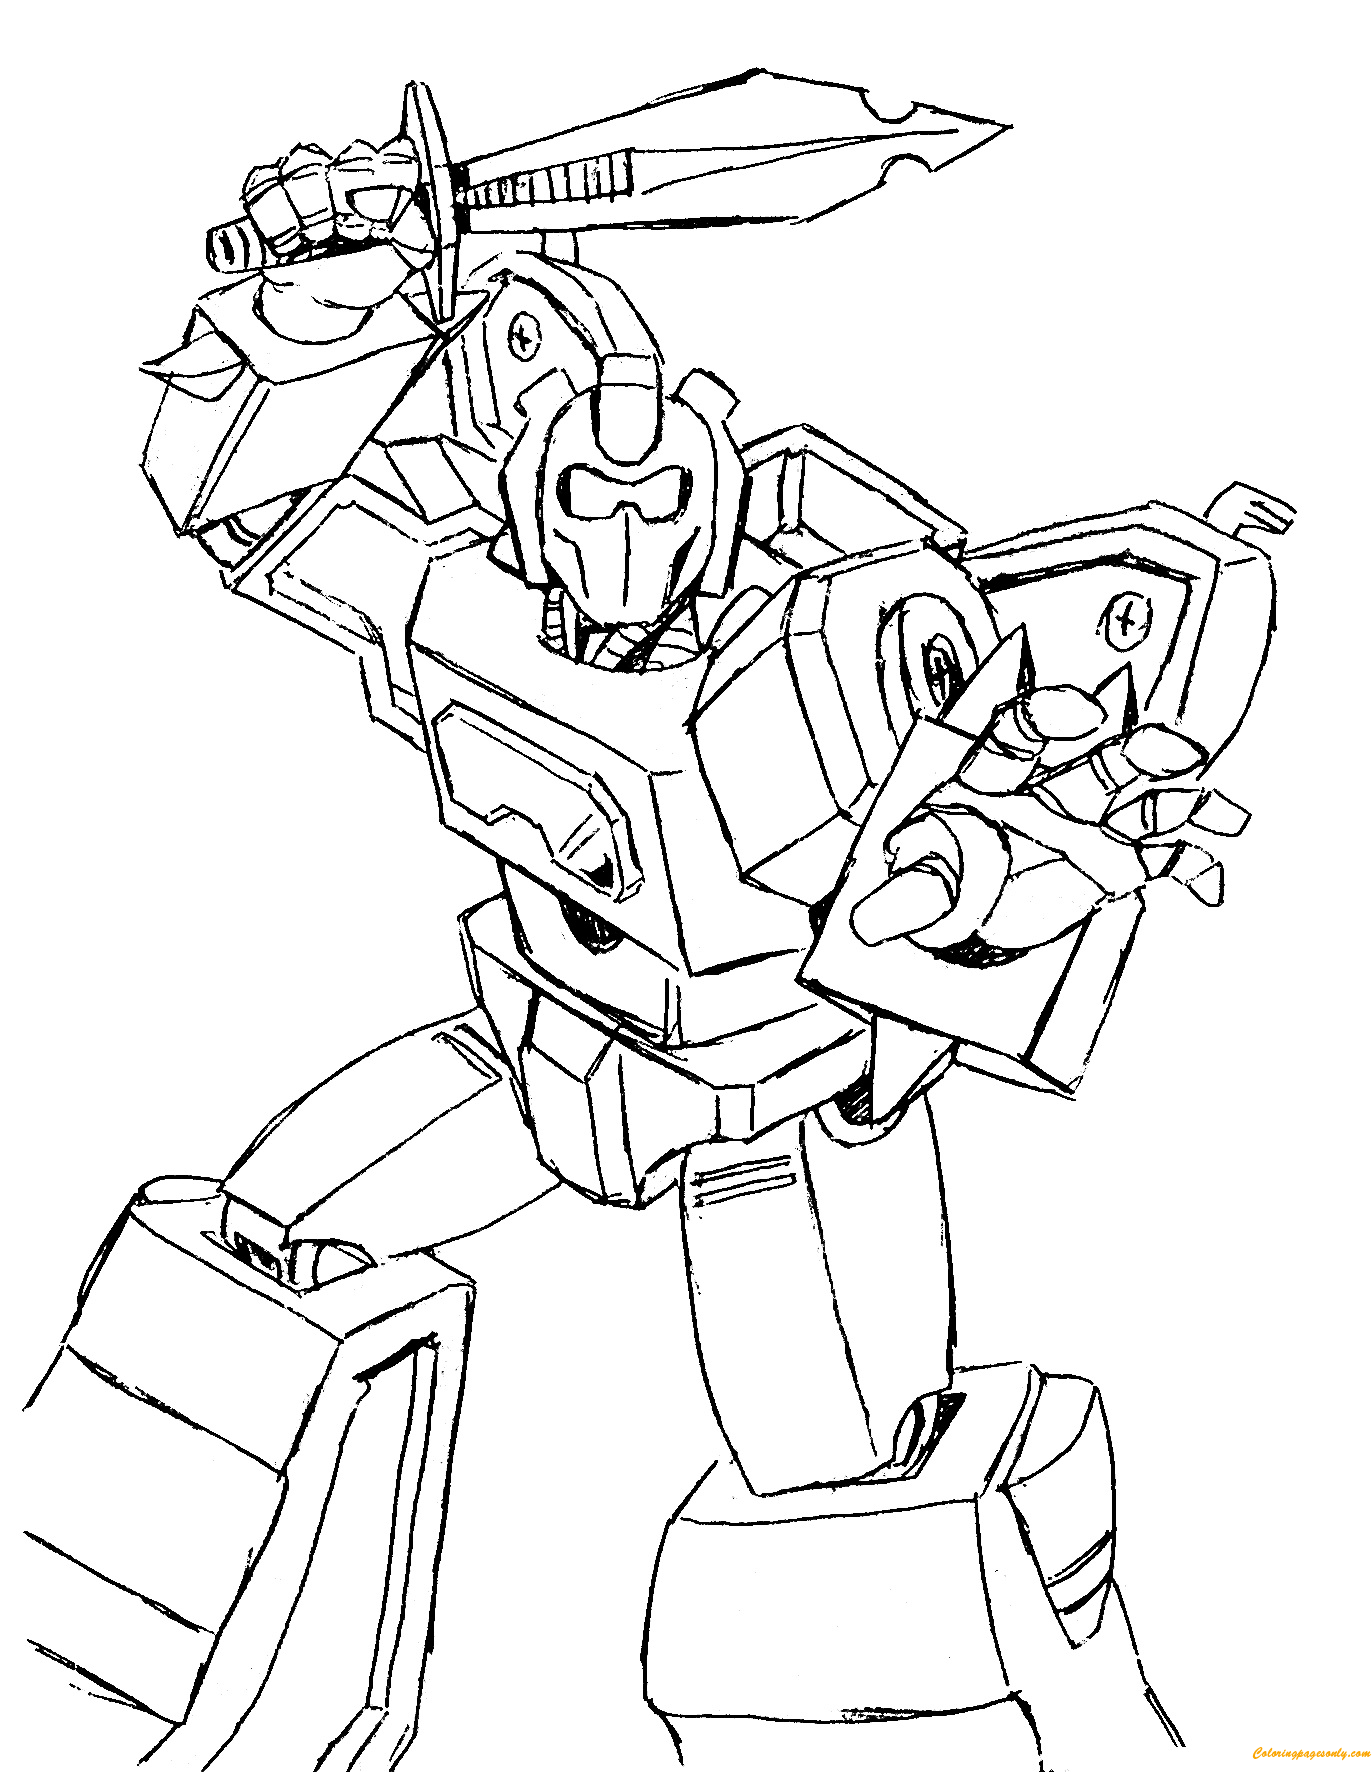 Transformers 3 Fighting Coloring Page - Free Coloring ...